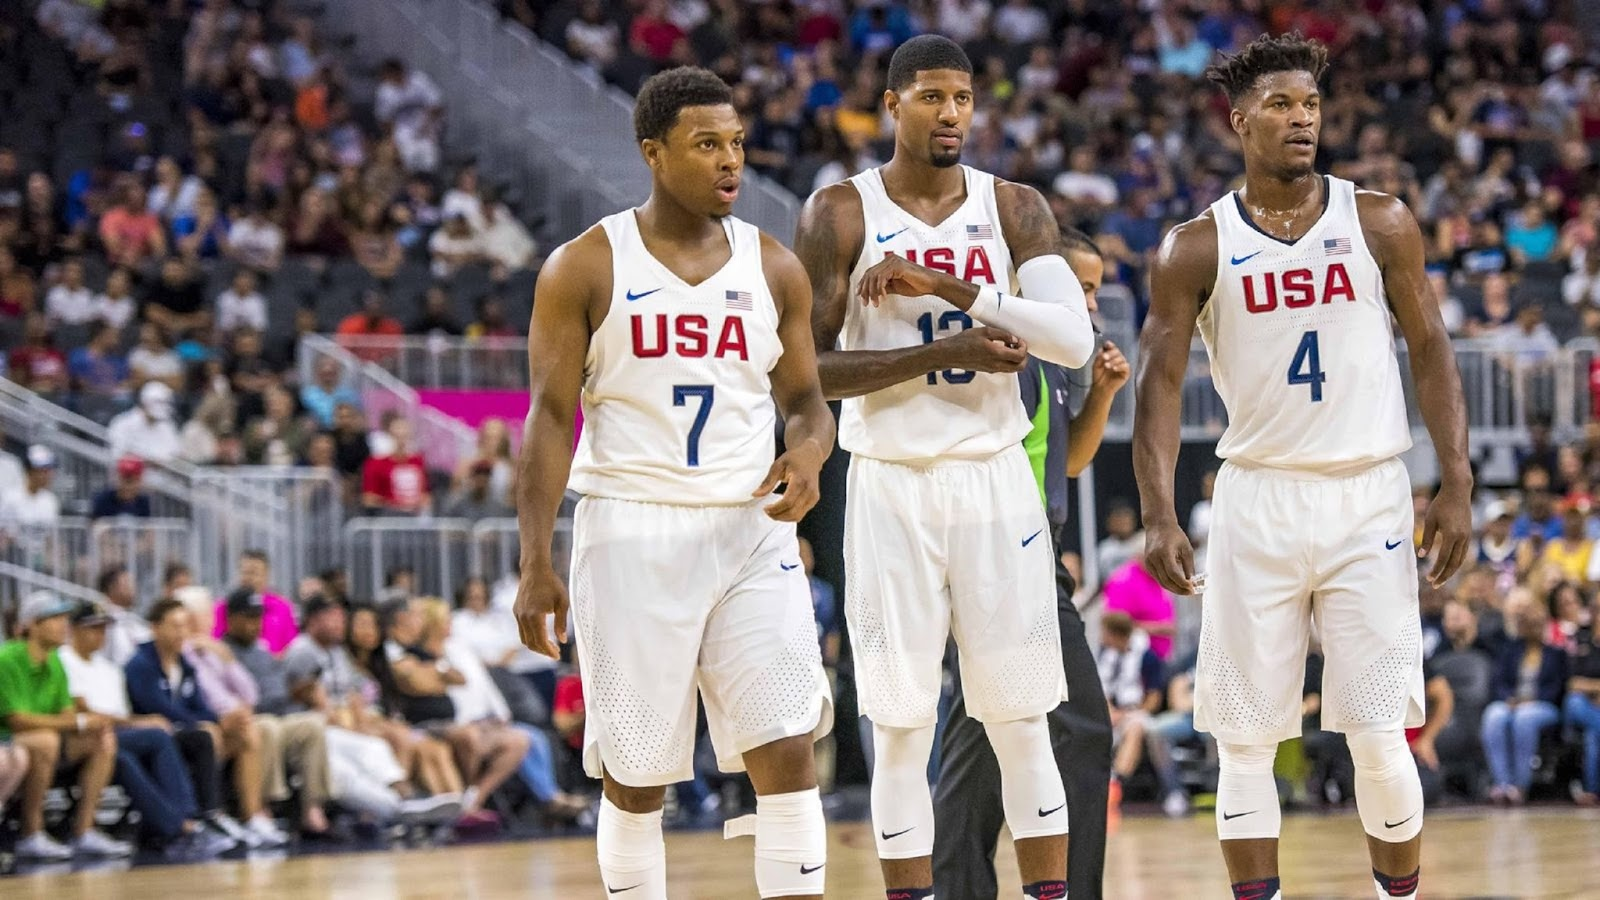 OLYMPICS TEAM USA BASKETBALL 4